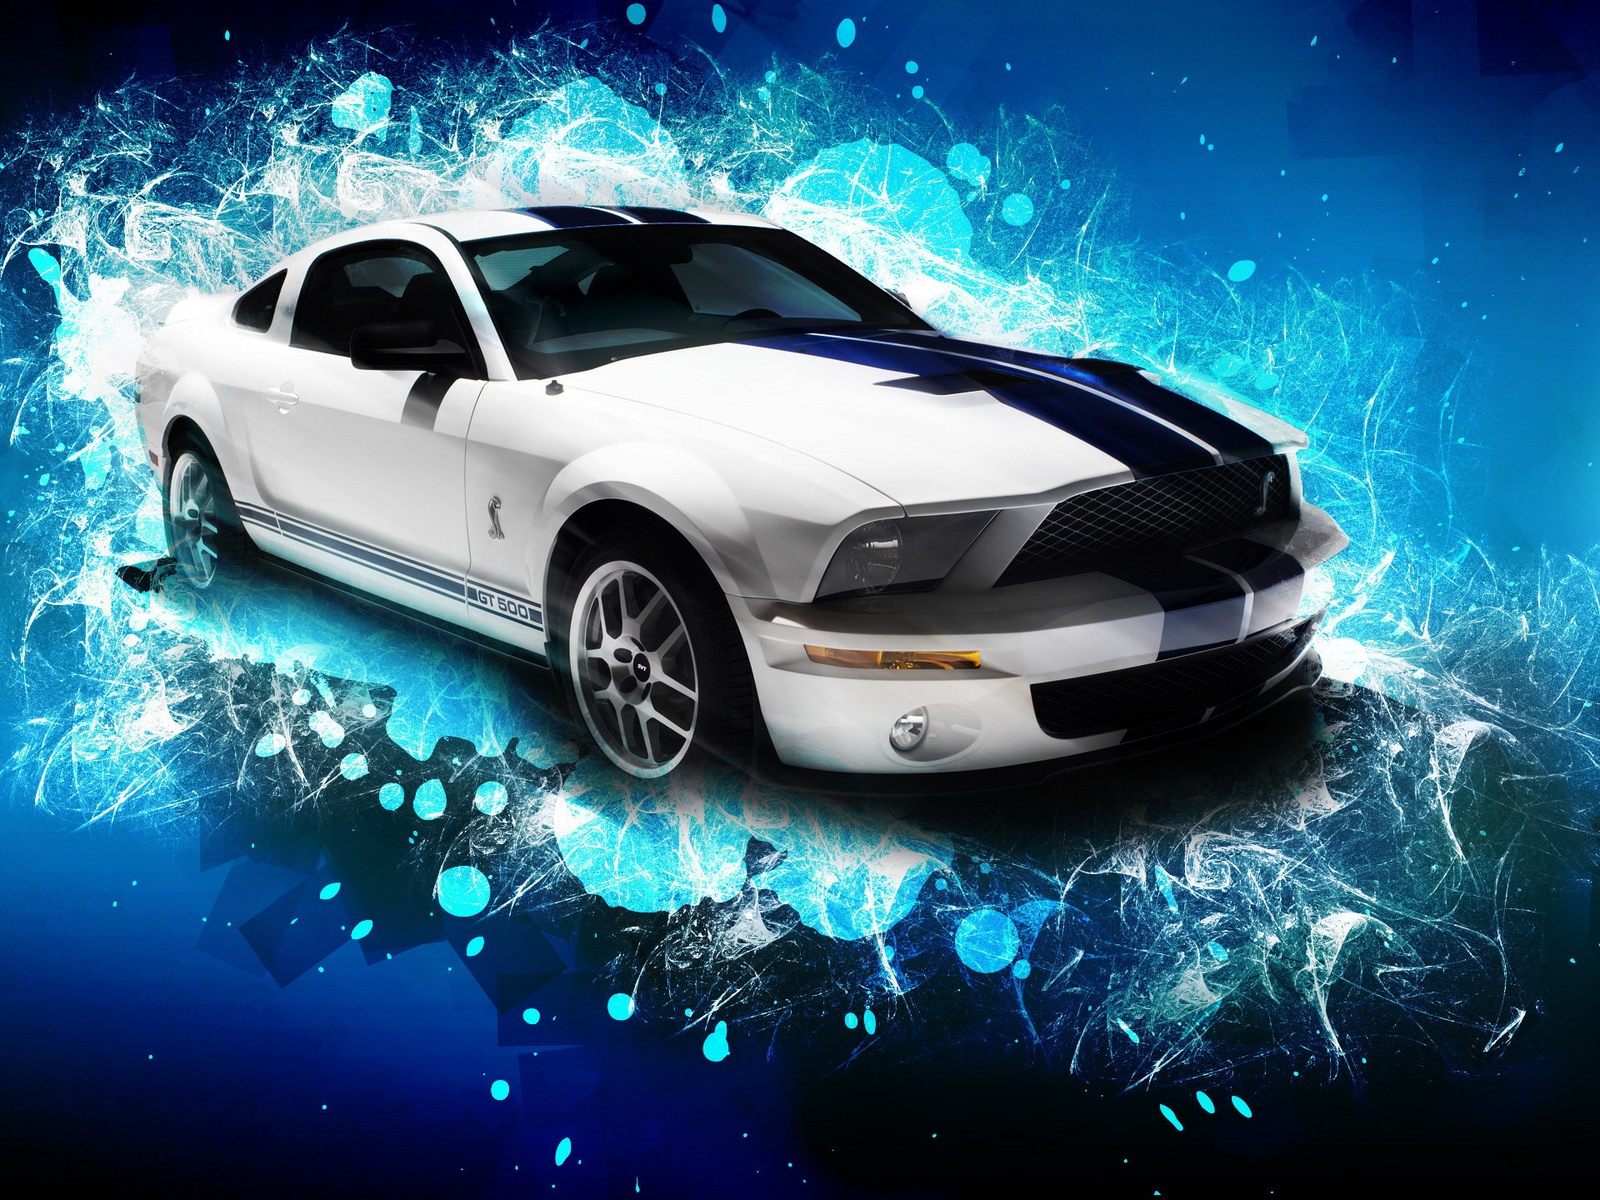 http://1.bp.blogspot.com/-fwZxl3bWzFo/TbLbWIlaD9I/AAAAAAAADCU/ZbRRxMLdEOg/s1600/hd%20car%20wallpapers.jpg